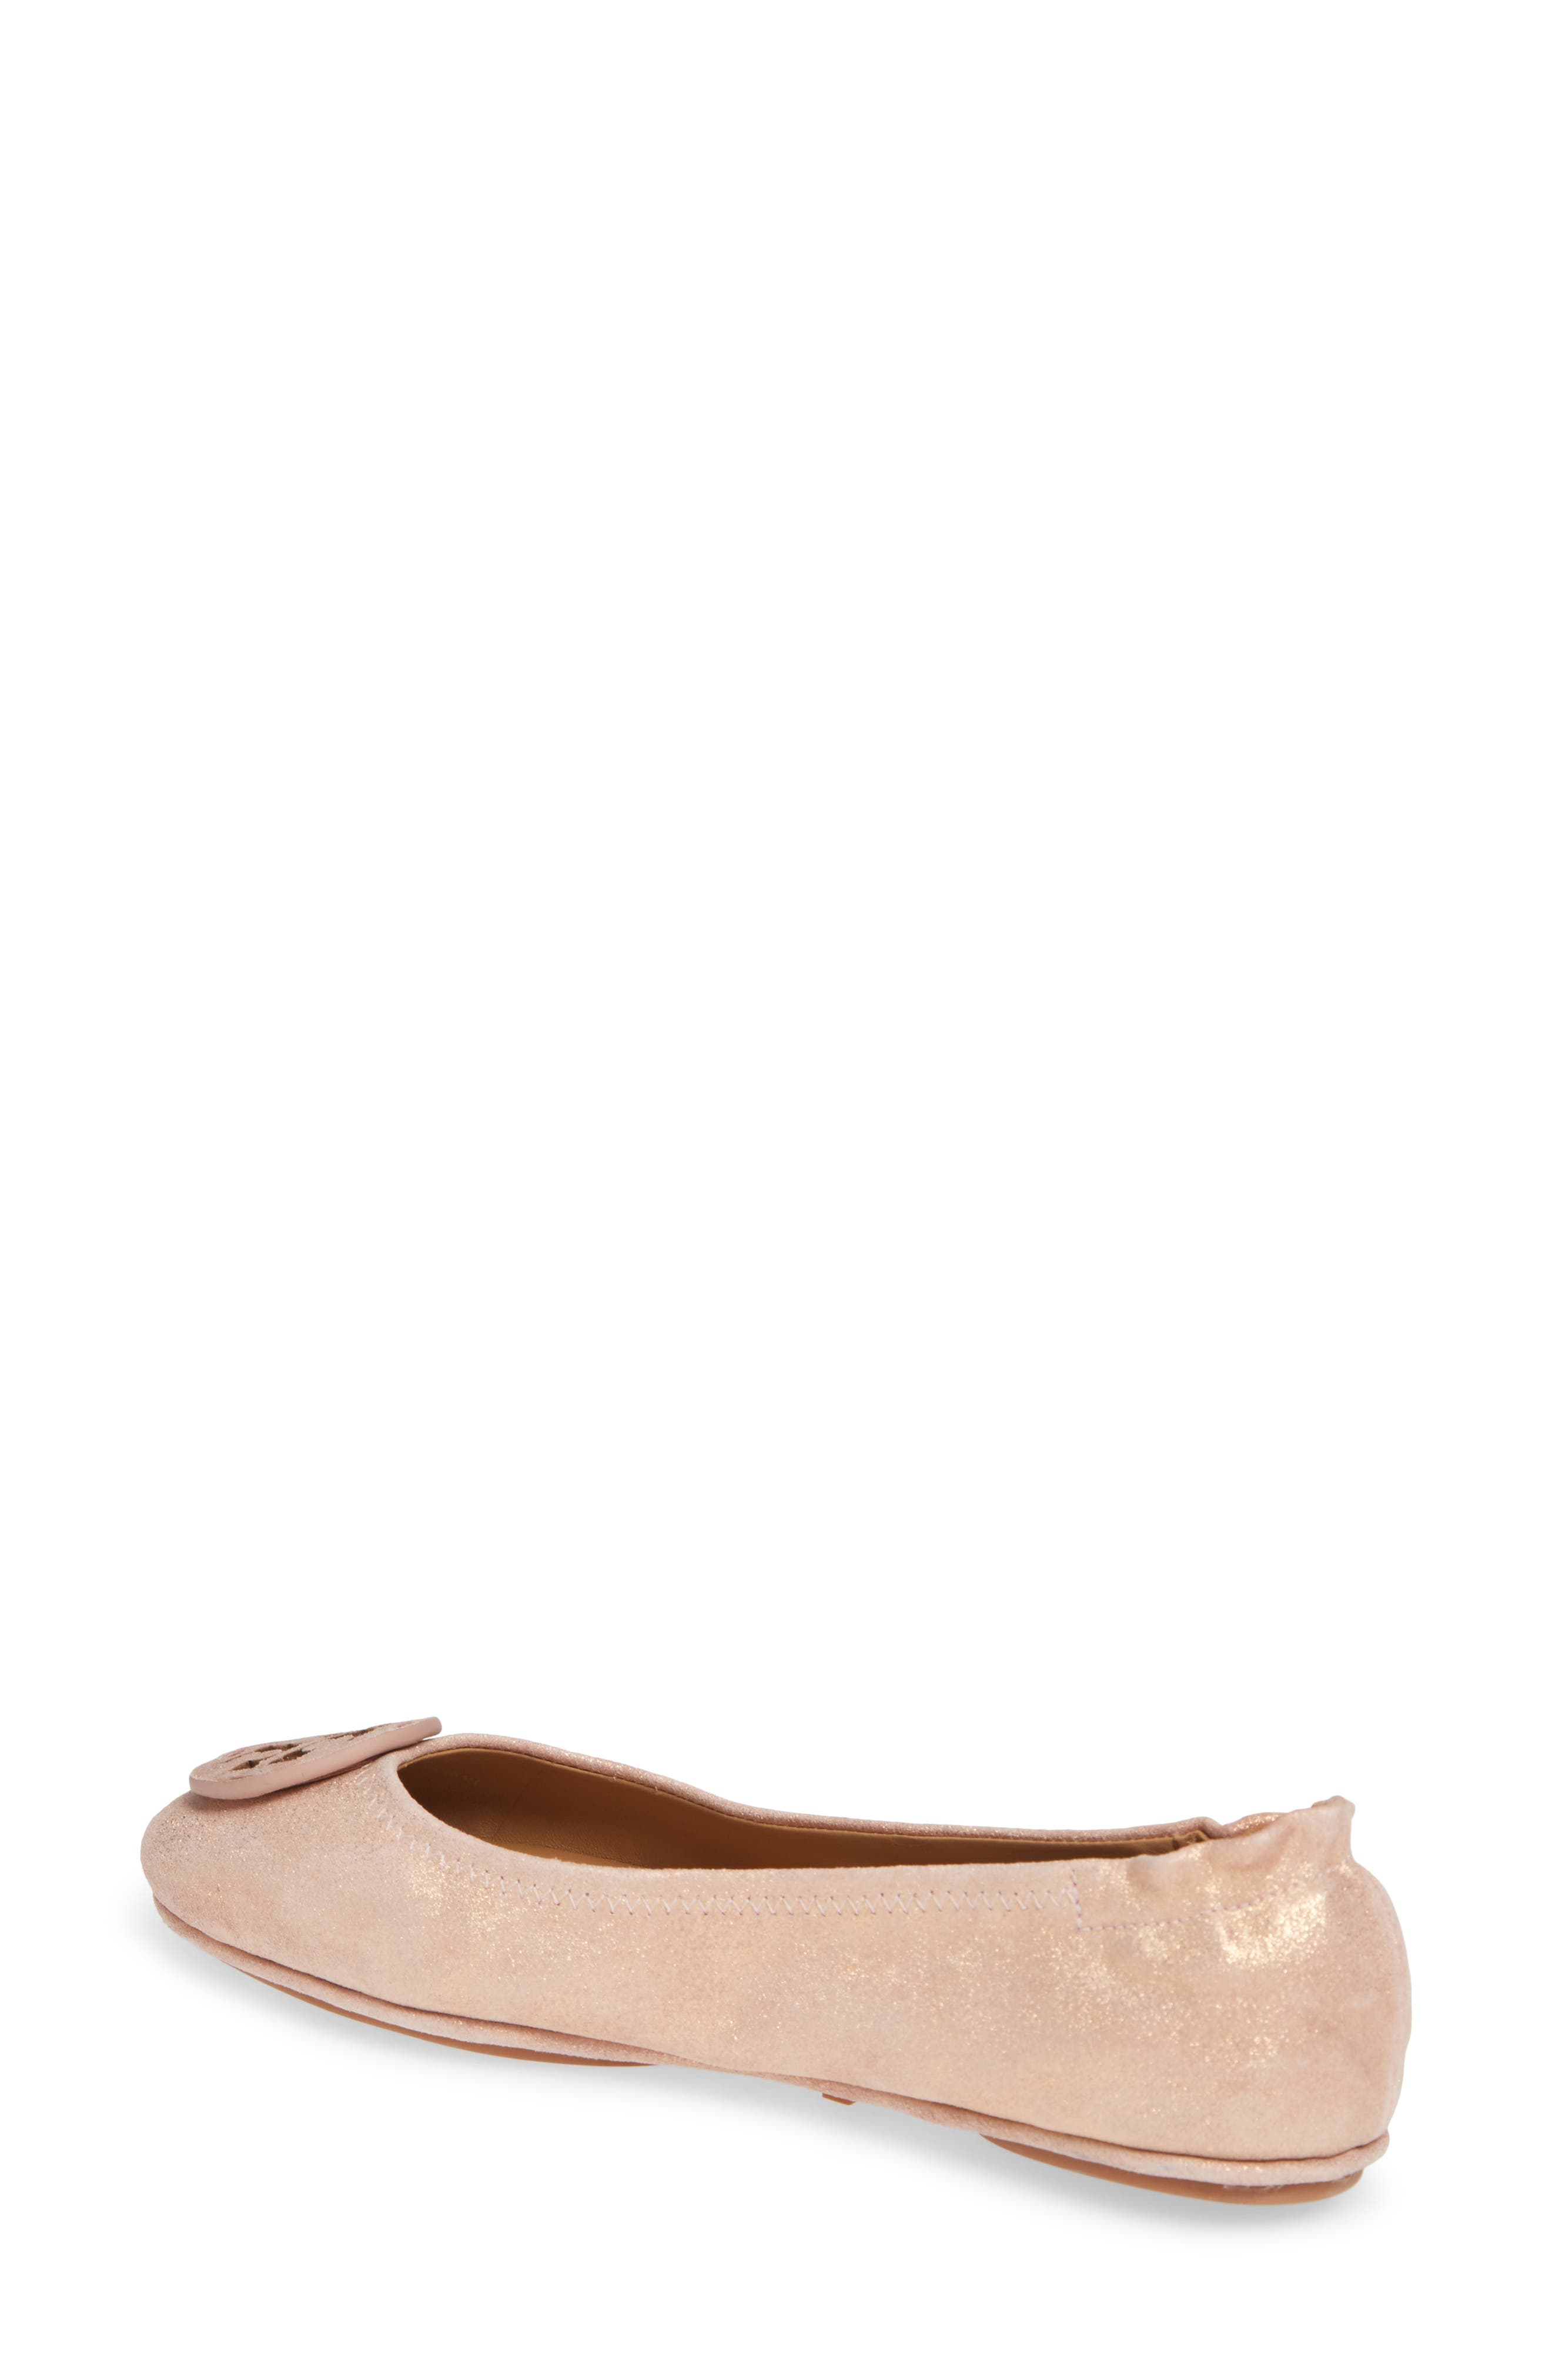 TORY BURCH, Minnie Travel Ballet Flat, Alternate thumbnail 2, color, 654